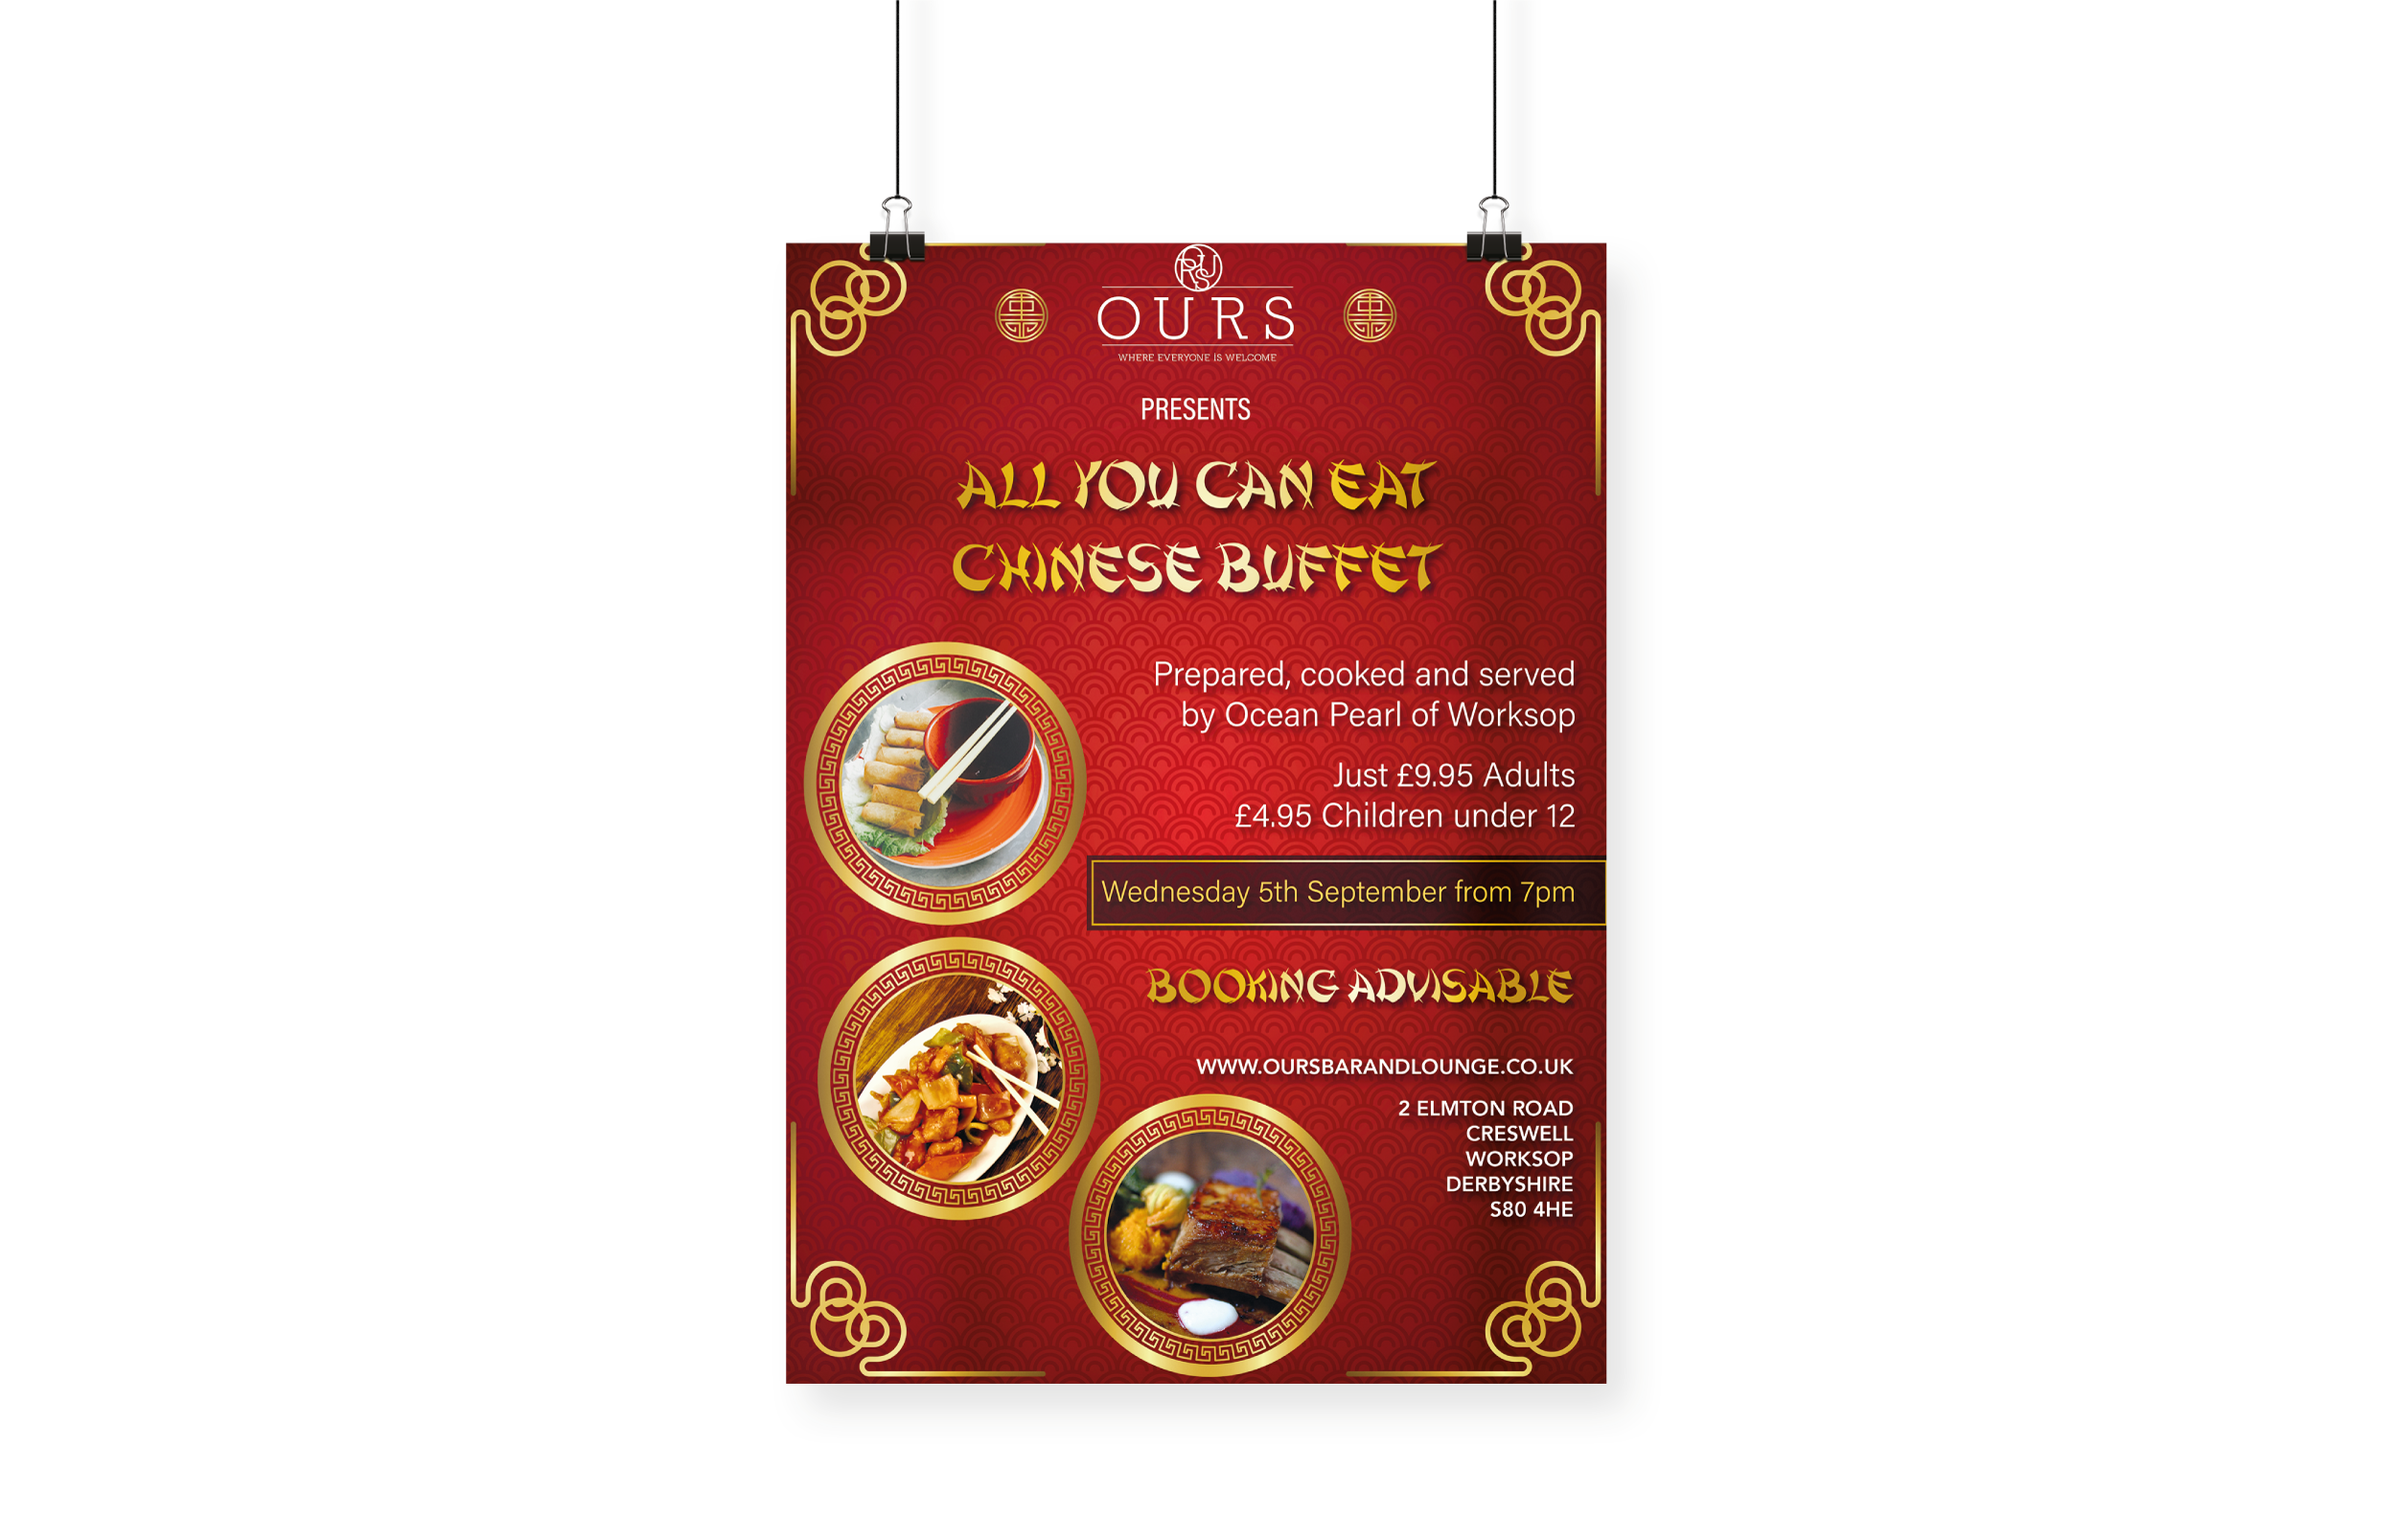 OURS Bar & Lounge Chinese Buffet Poster Design and Print